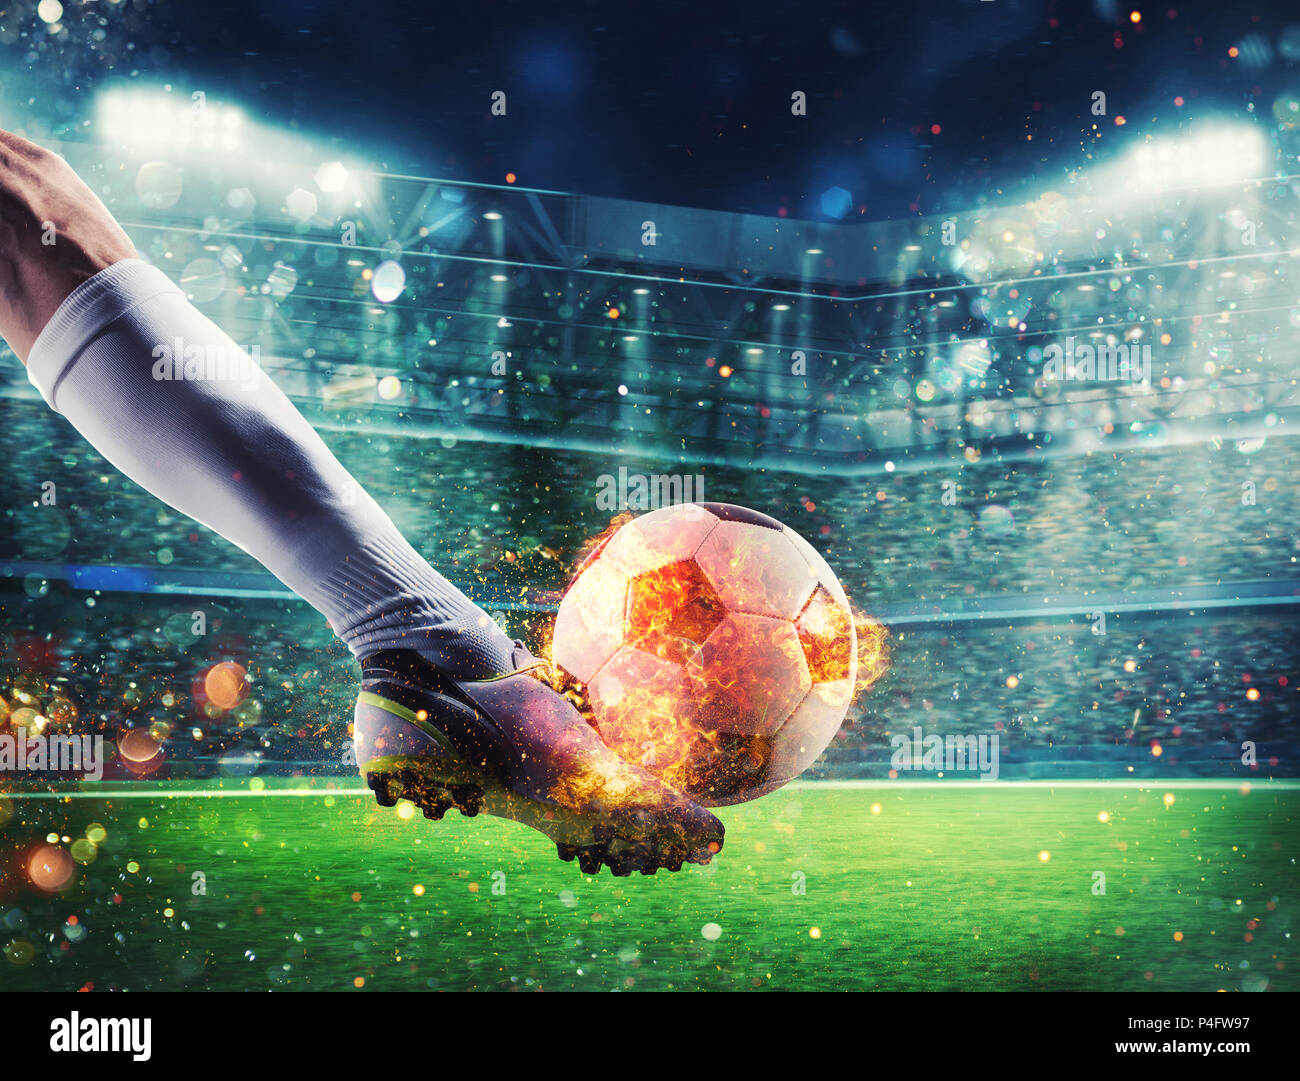 Soccer player with soccerball on fire at the stadium during the match - Stock Image